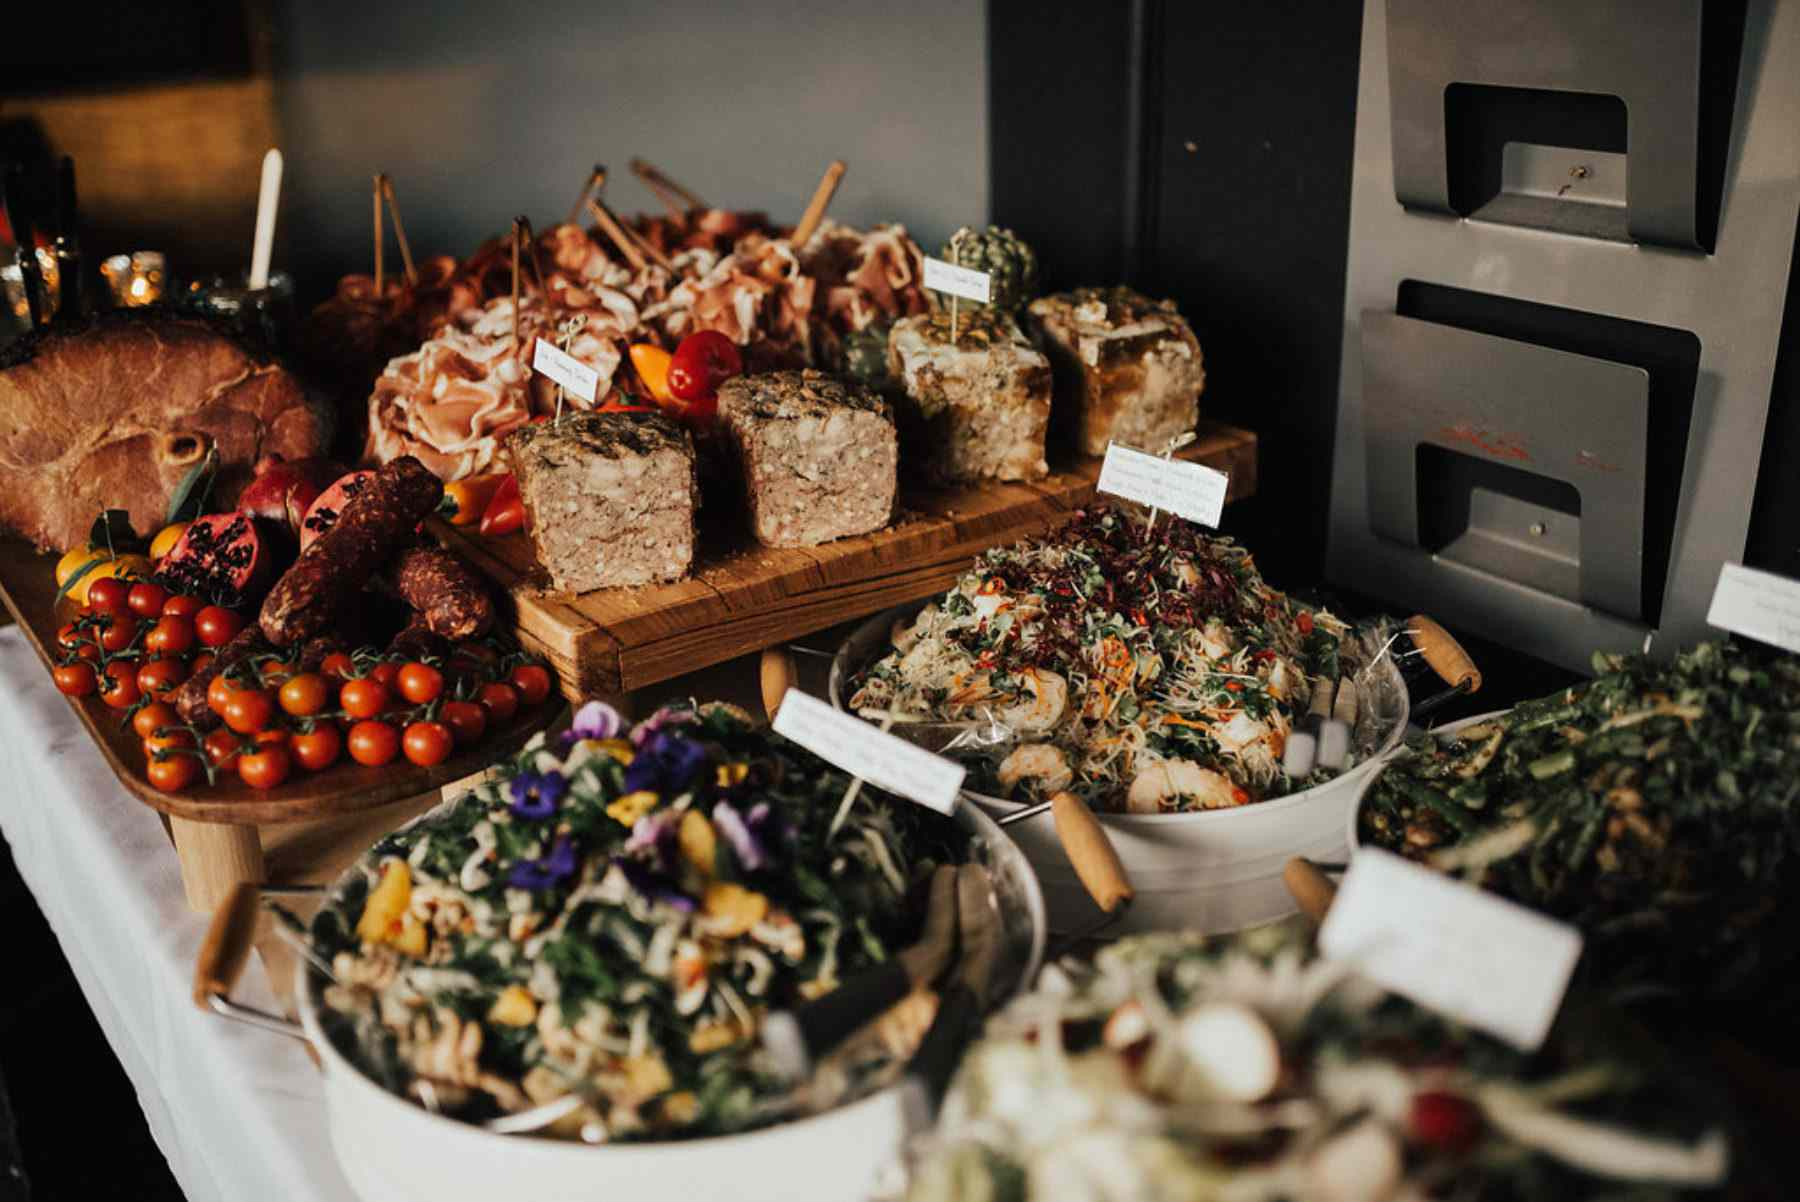 Reception grazing table with salads